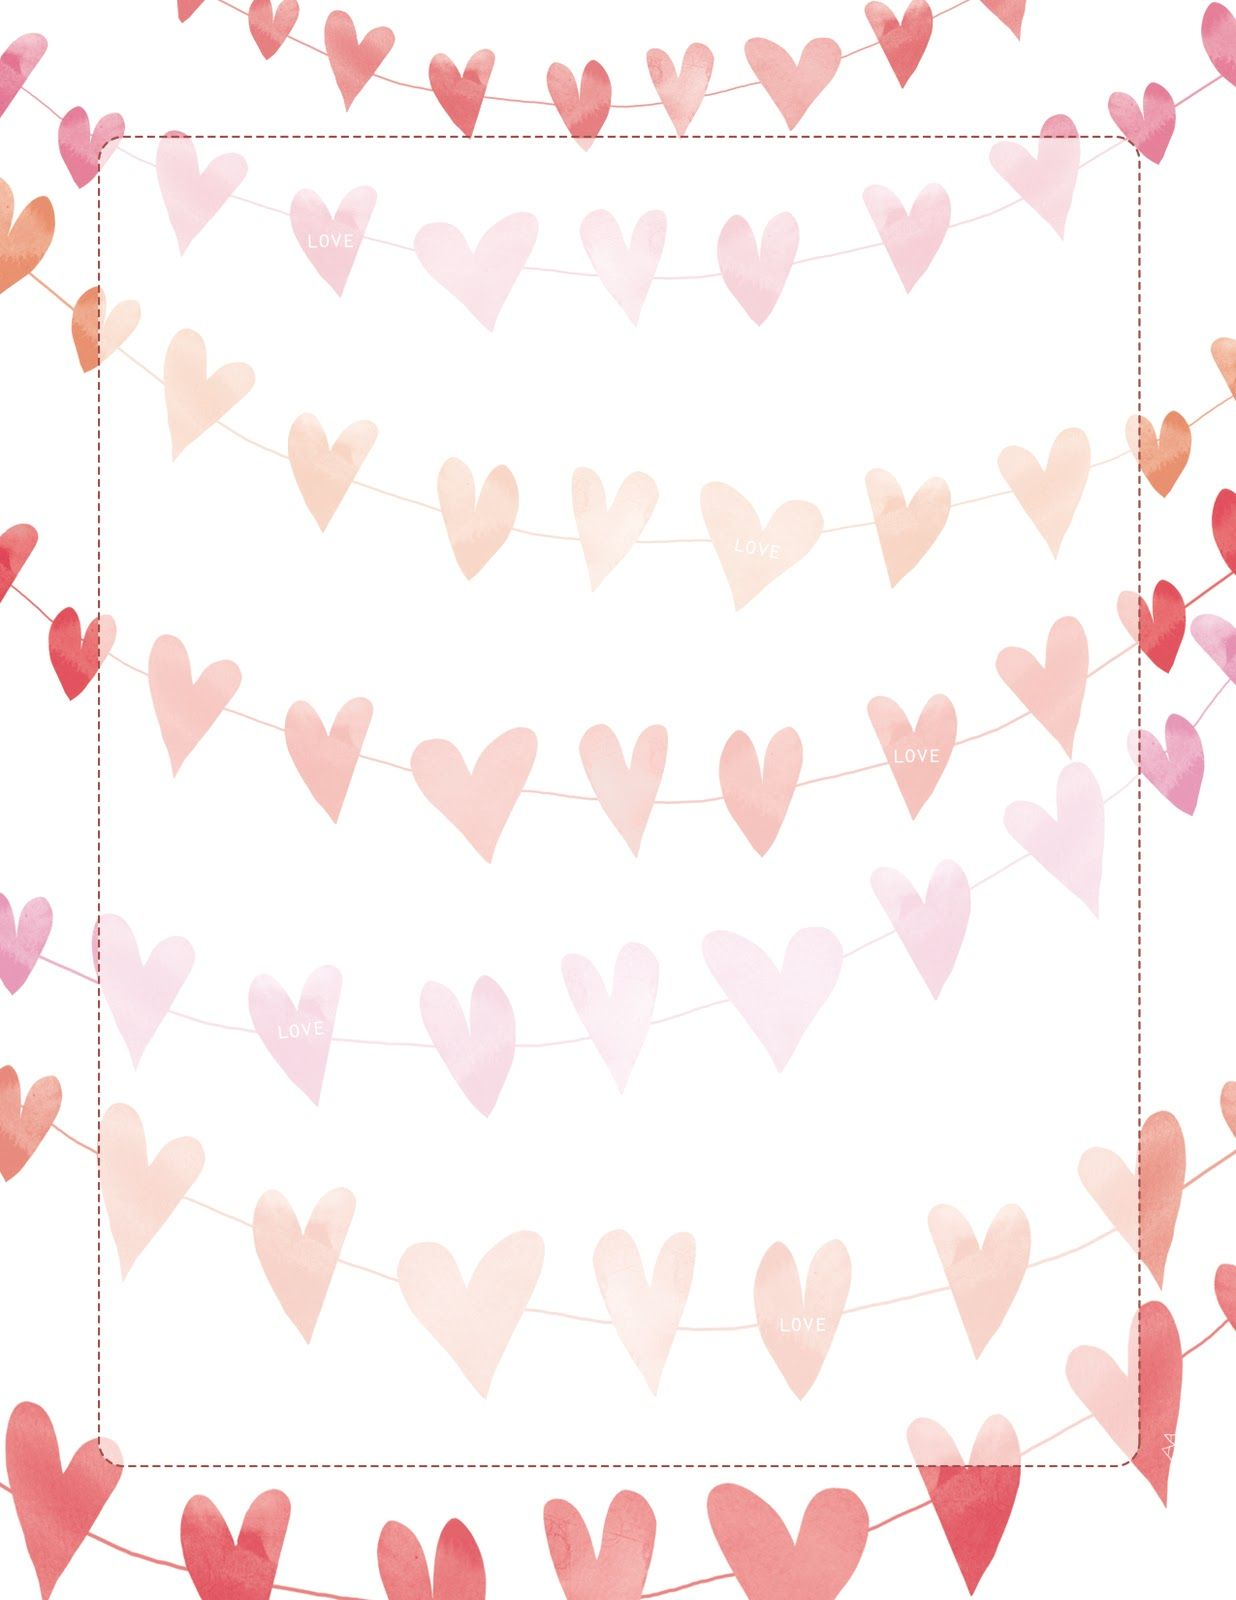 Arian Armstrong Free Download Valentines Printables Printable Stationery Letter Paper